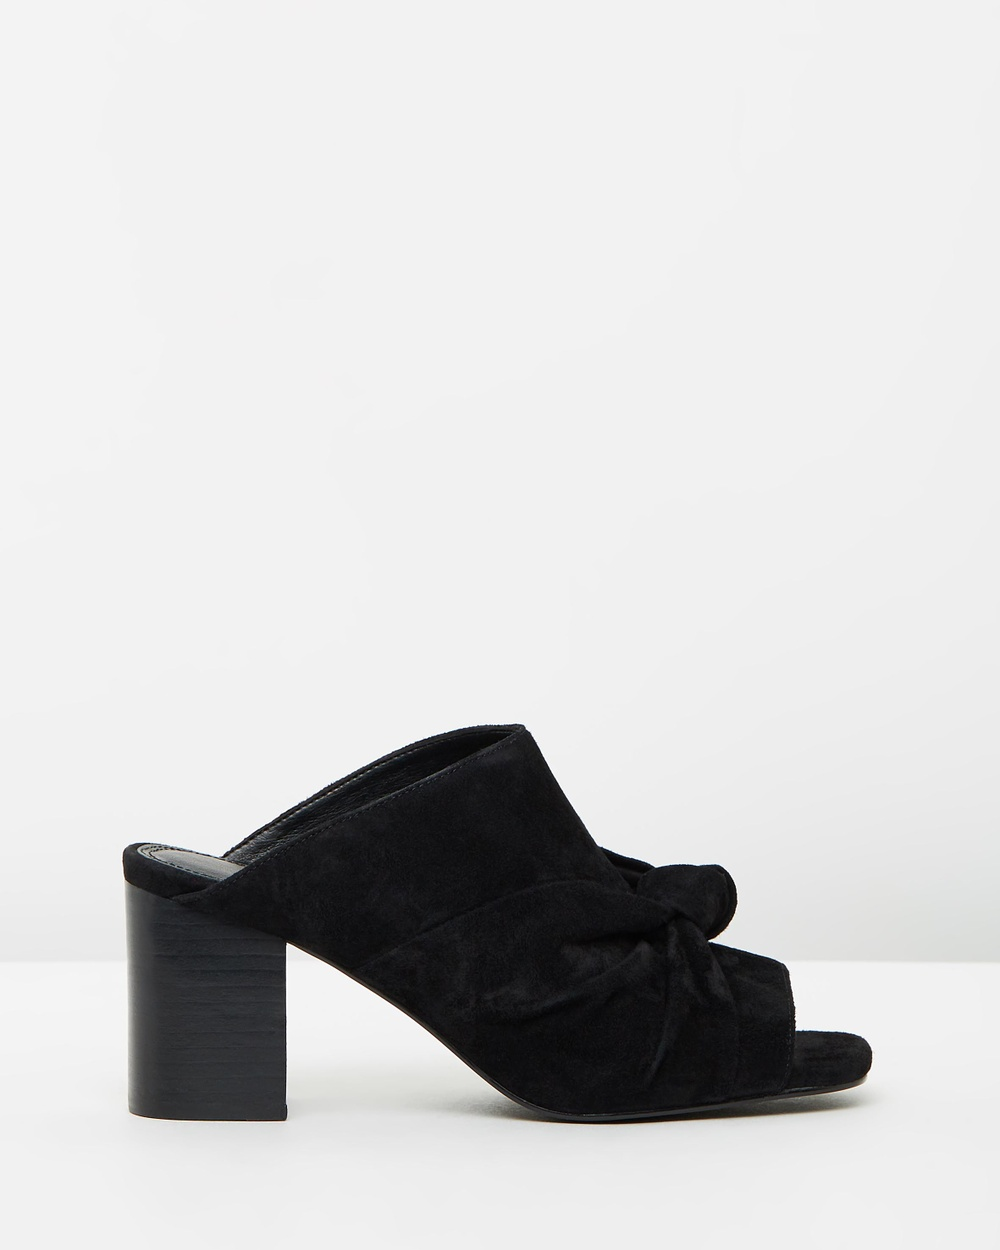 Atmos & Here Ellie Leather Knot Mules Mid-low heels Black Suede Ellie Leather Knot Mules